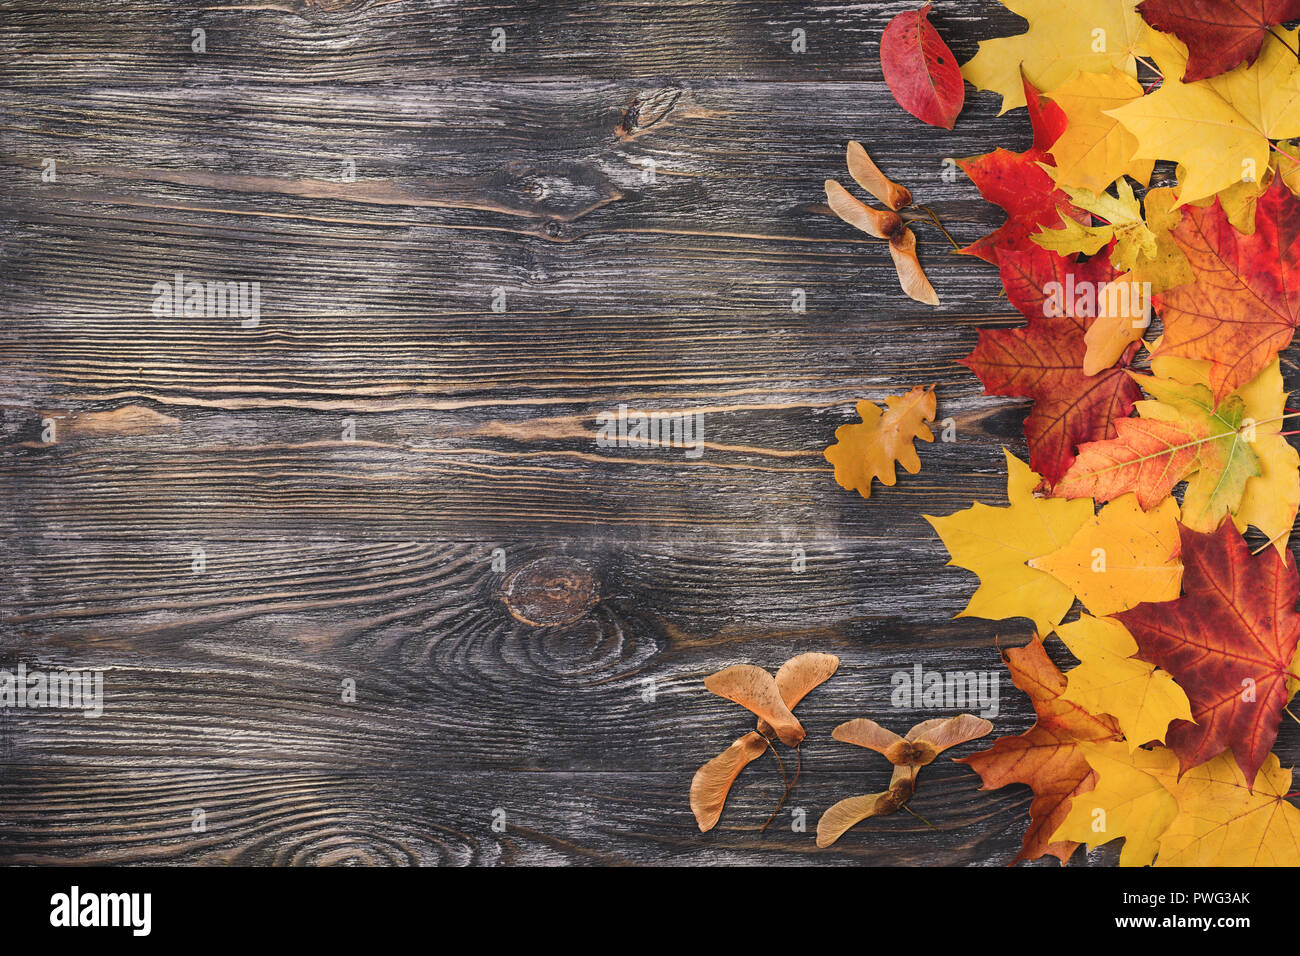 Autumn wooden background with yellow leaves. Top view with copy space. Stock Photo